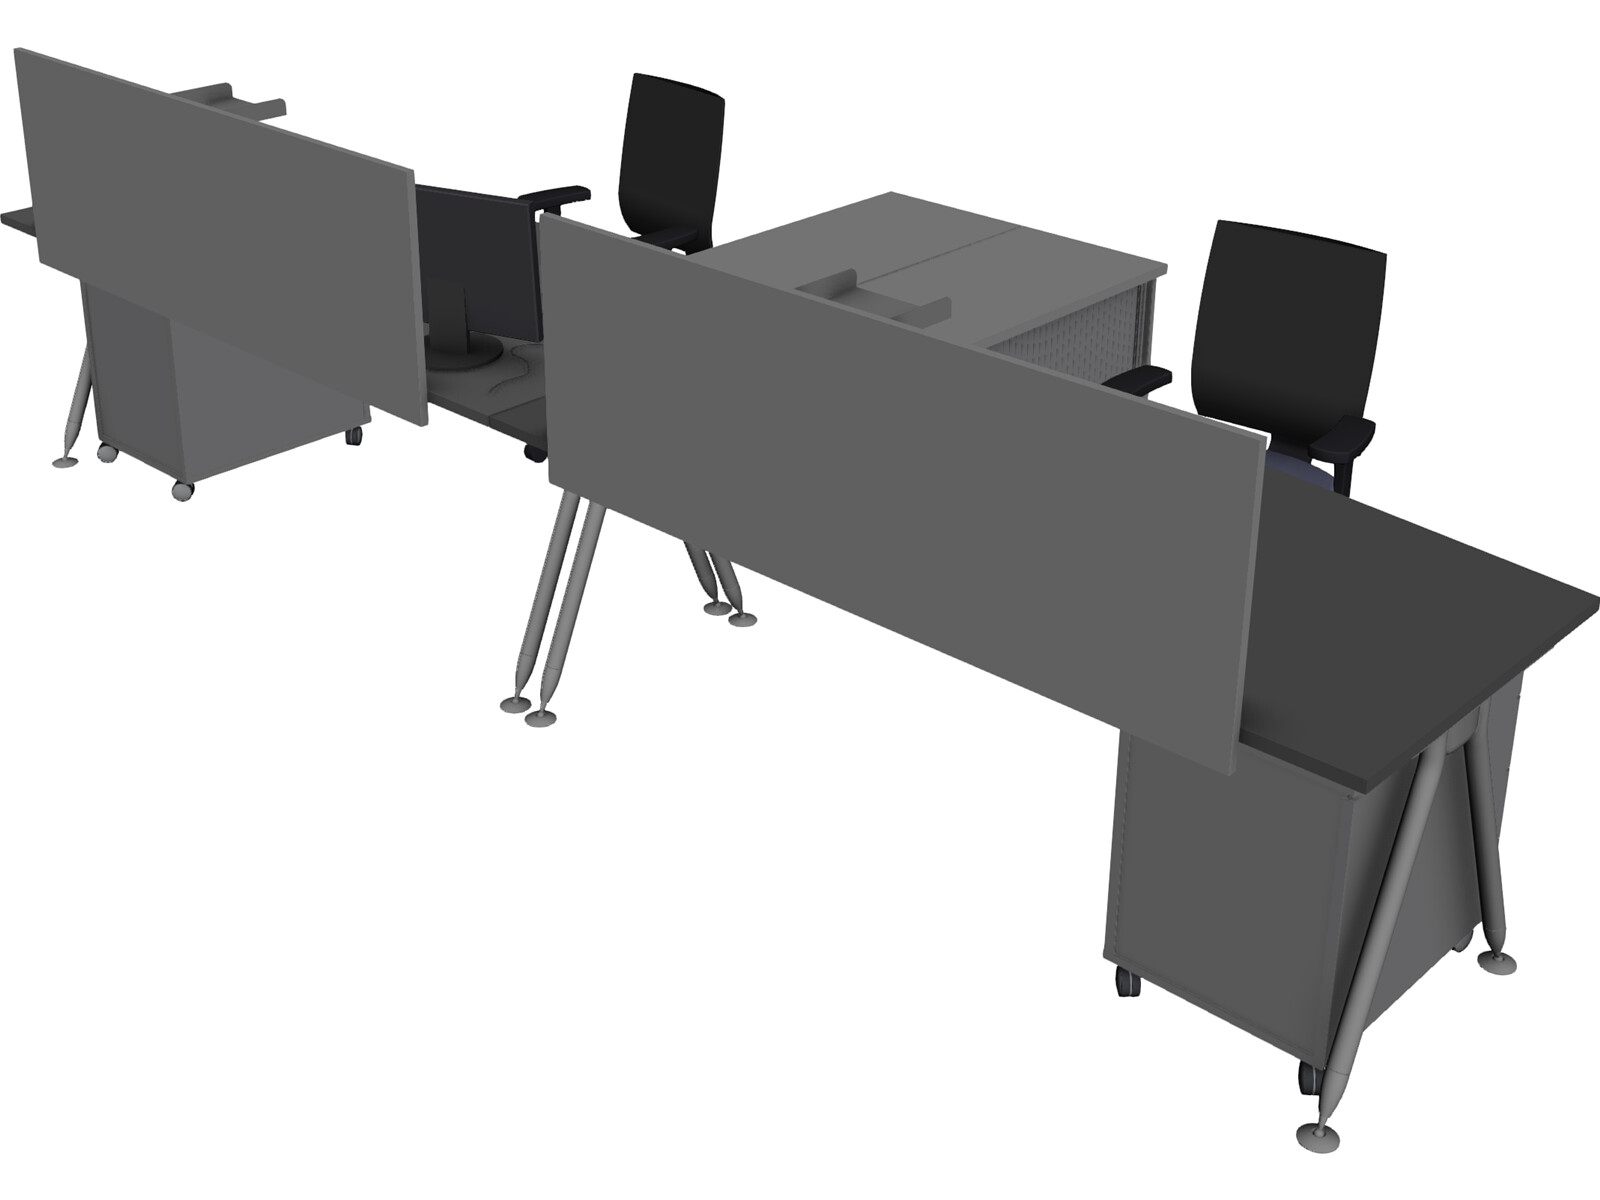 office table models. Beautiful Table Office Table Models Model Models E Inside Office Table Models T